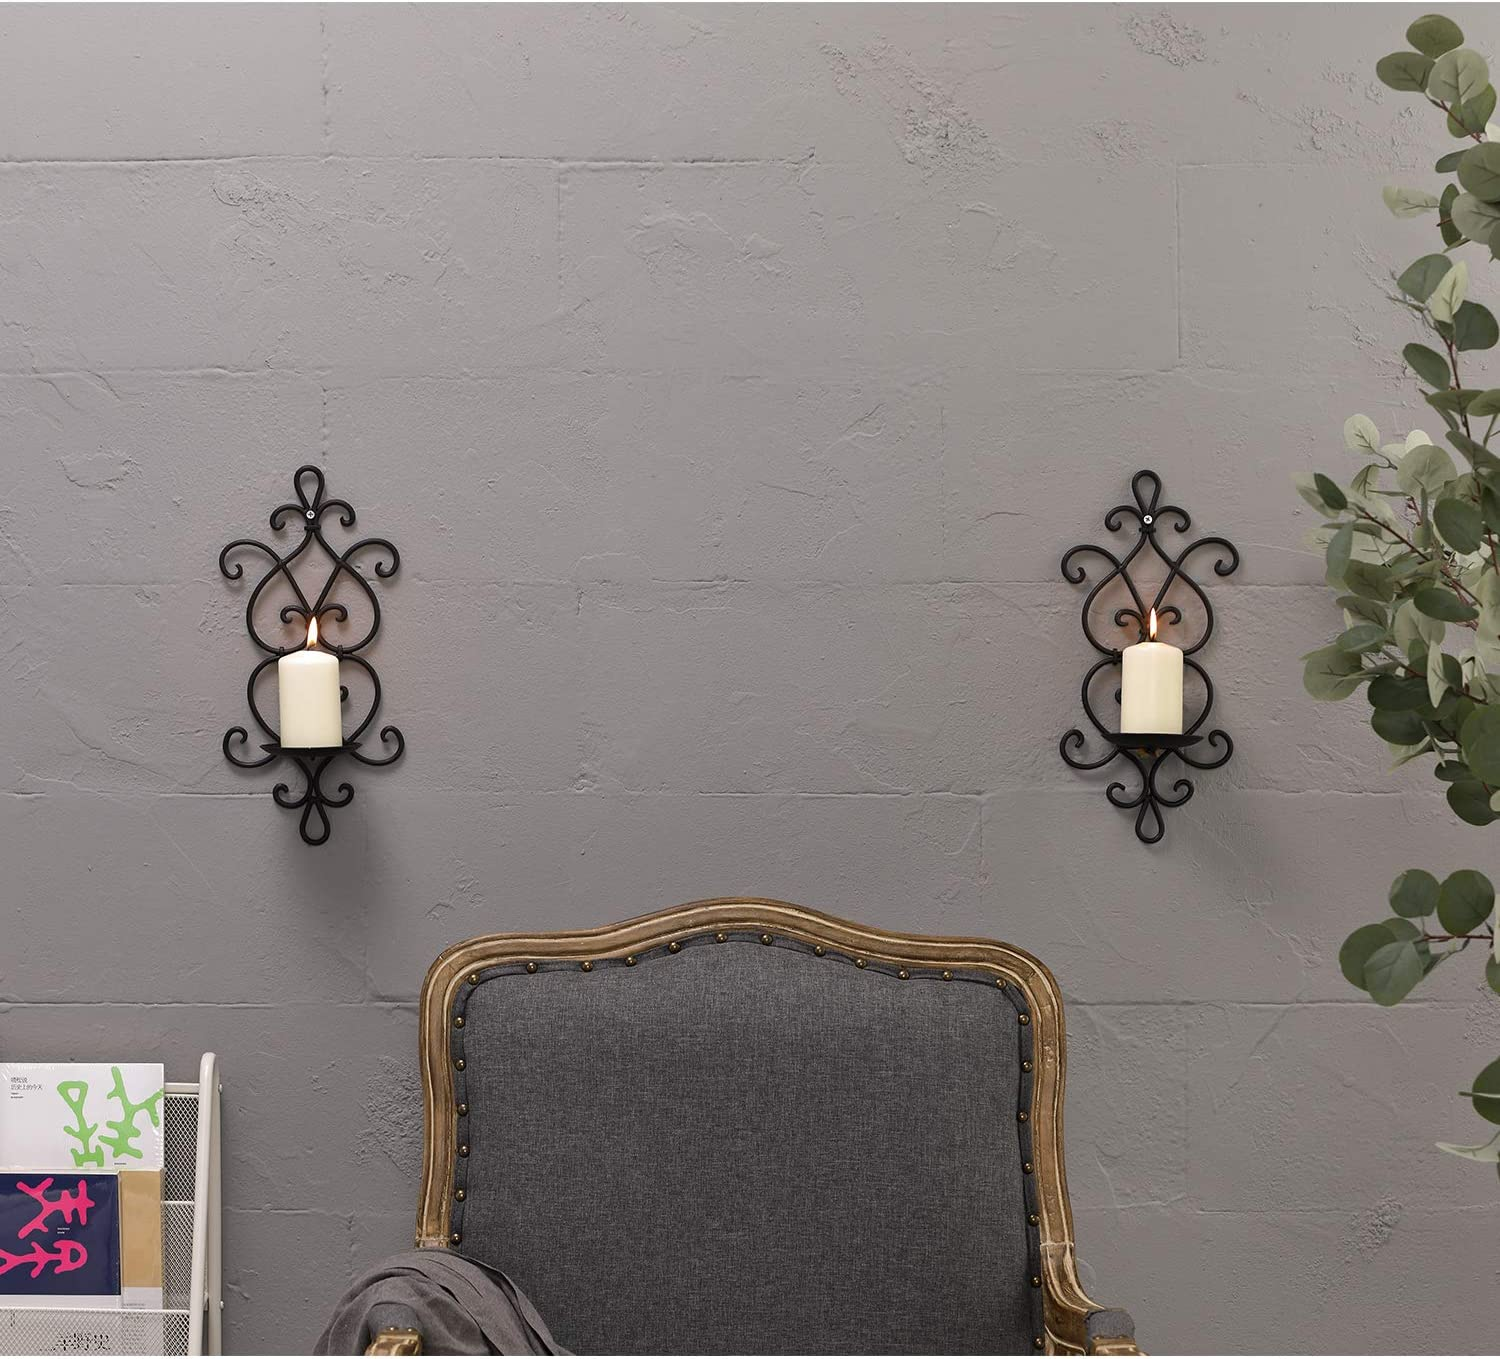 Ticco Wall Candle Sconce Set of 2 Wrought Iron Candle Holder Hanging Wall Mounted Candle Sconces for Living Room Home Decor Black